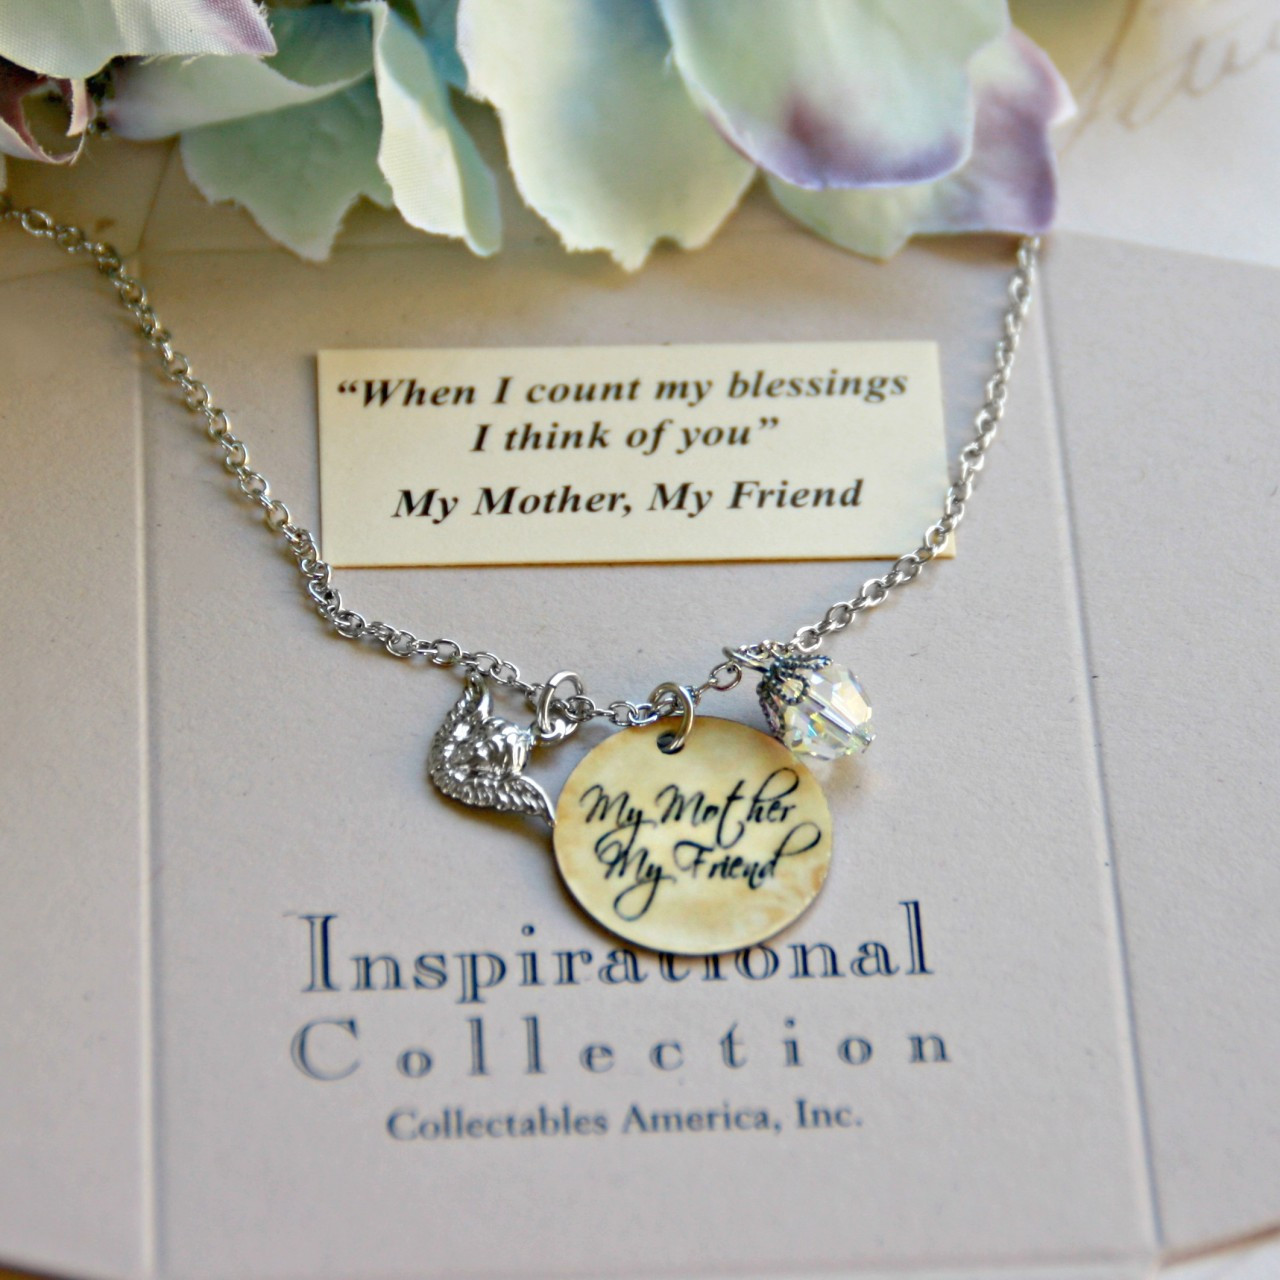 IN-490 My Mother, My Friend Charm Necklace